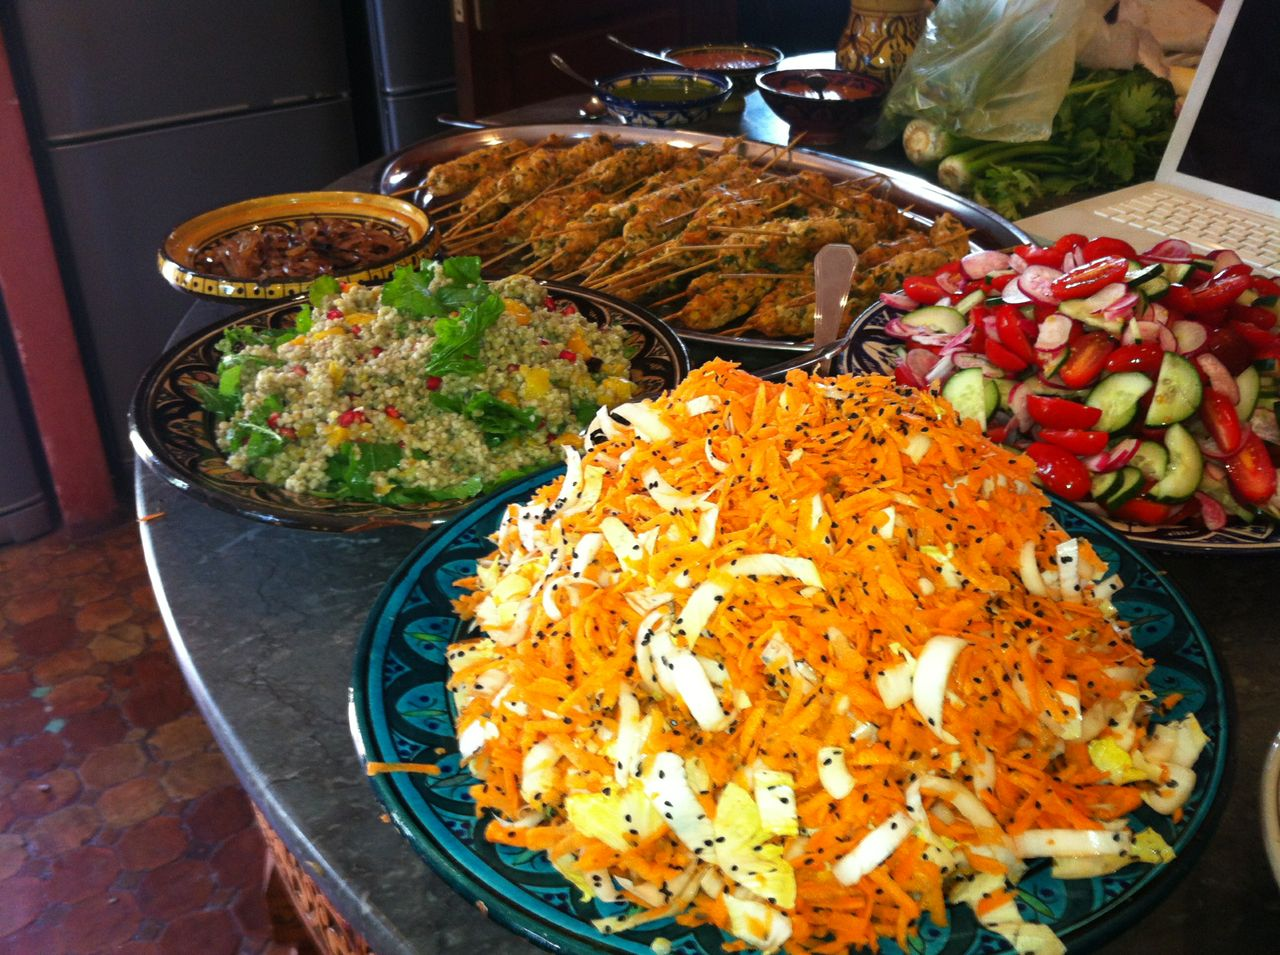 Table full of colourful food for an inspa lunch buffet